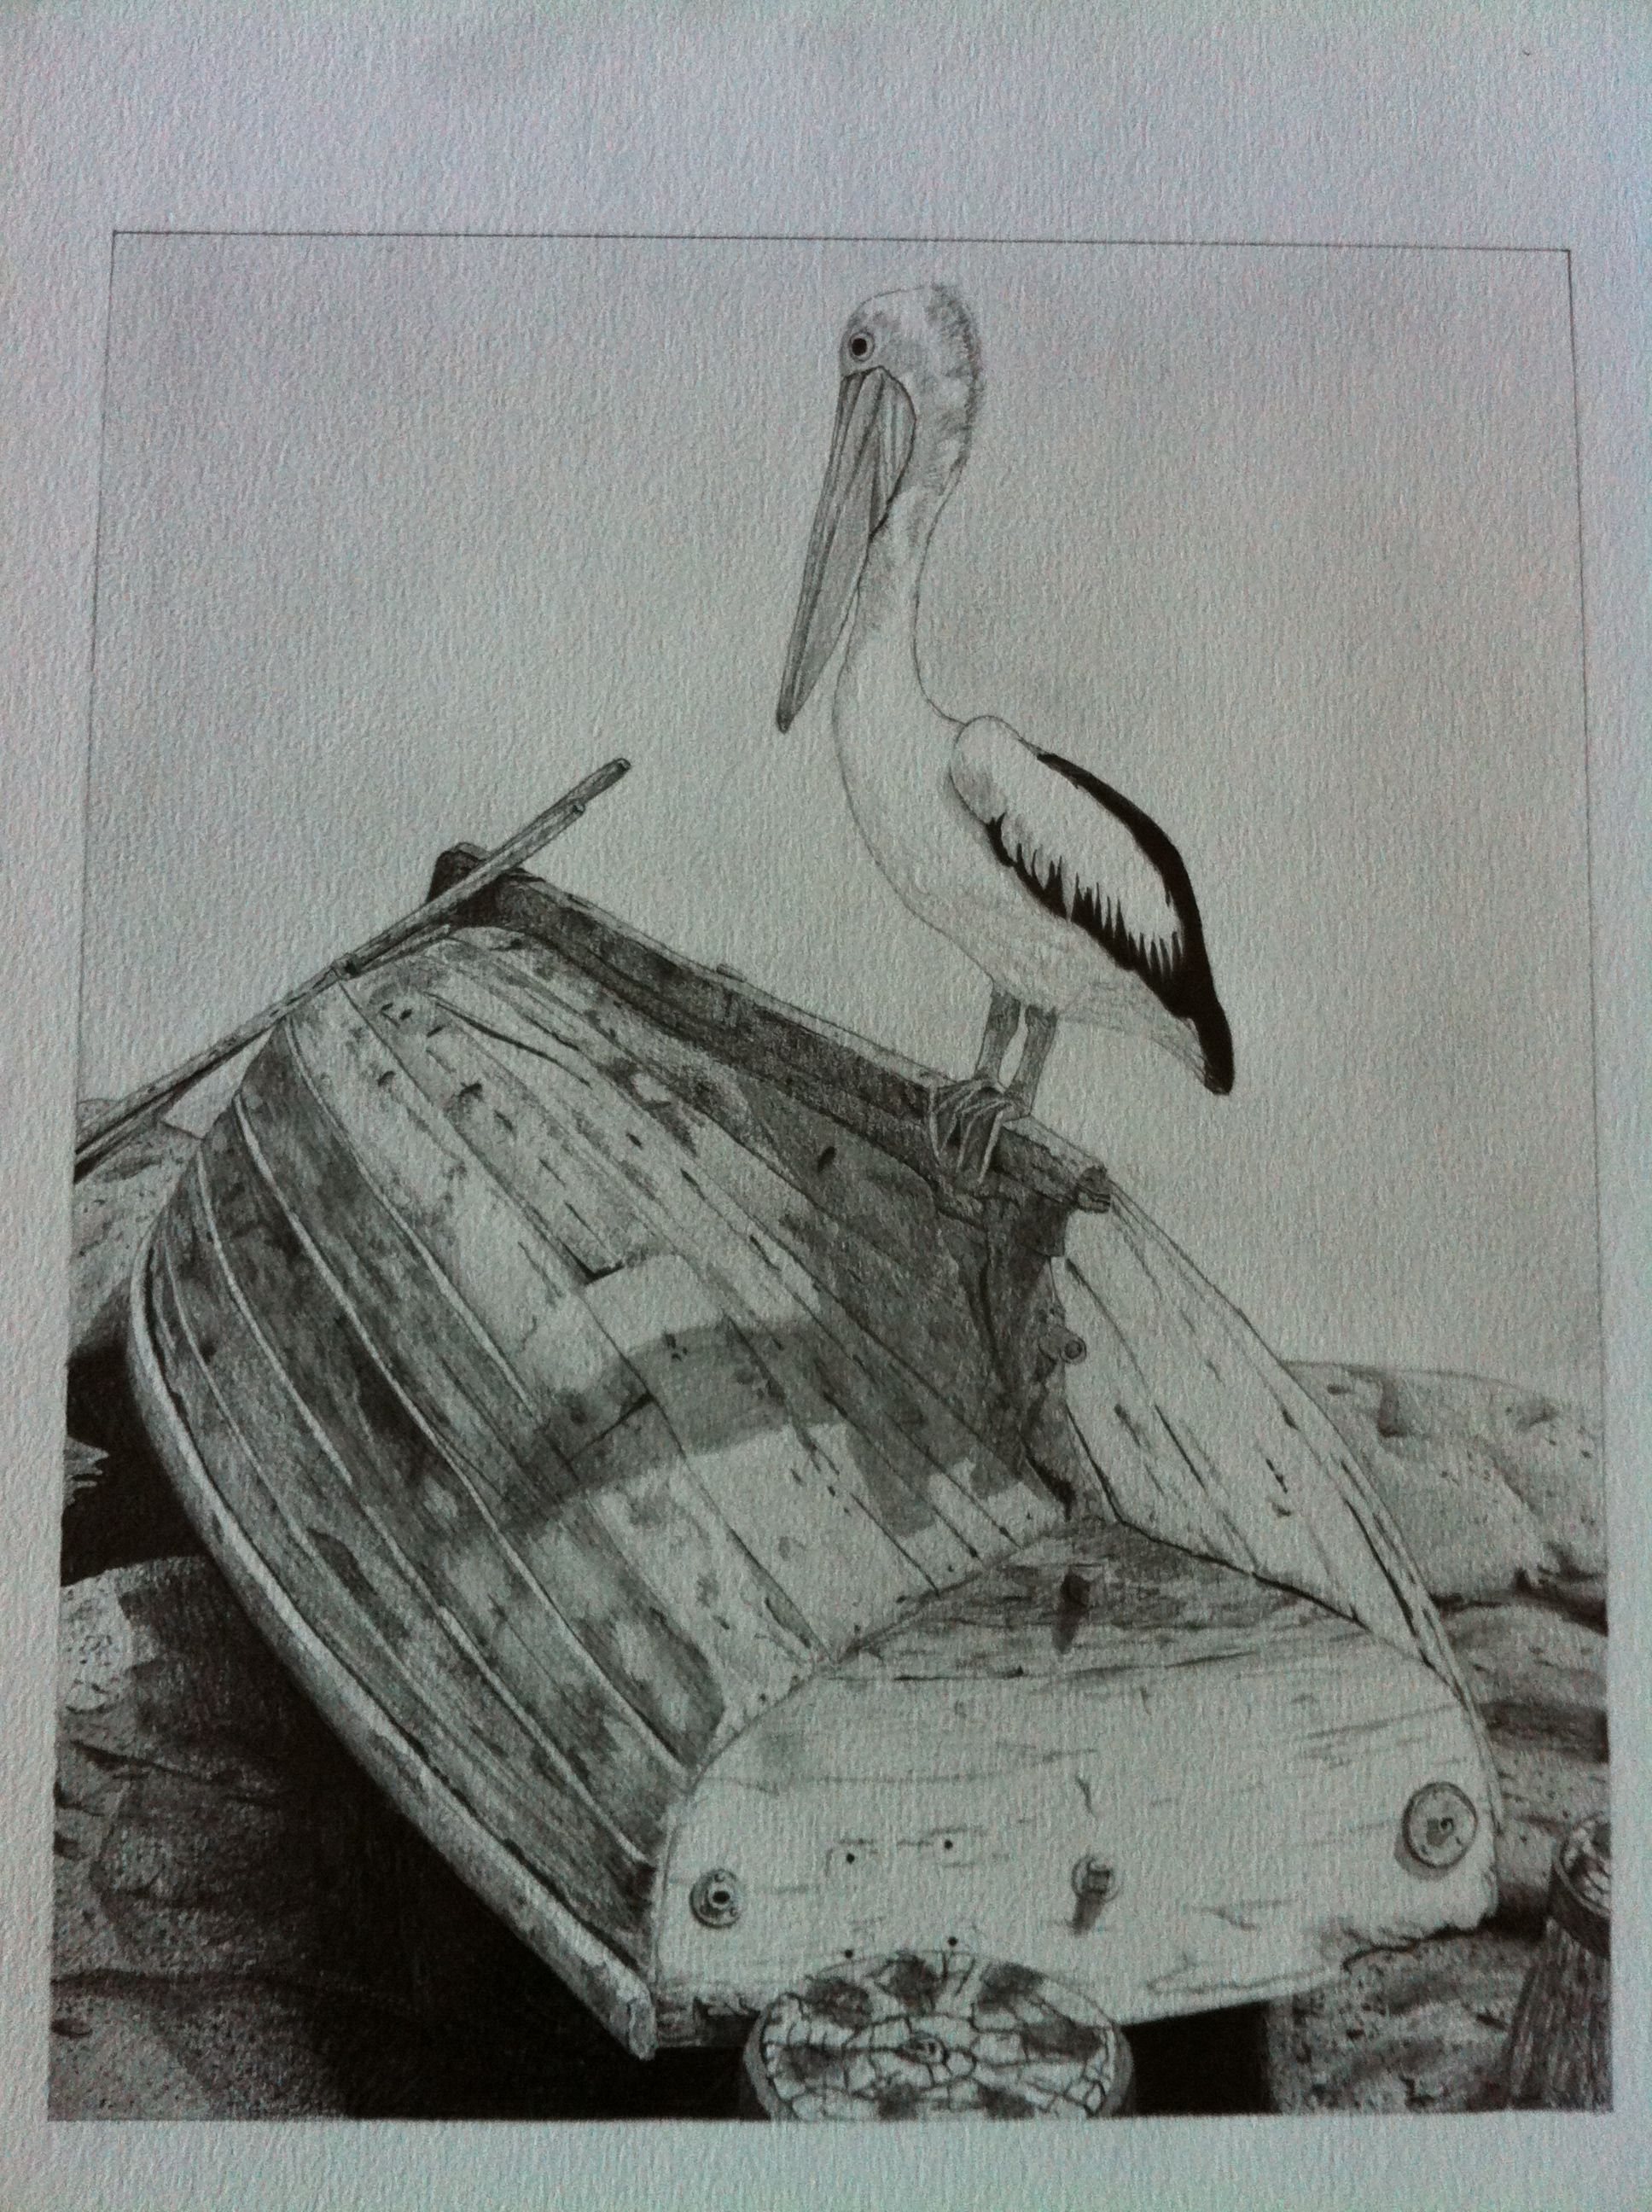 Pencil drawing of pelican on upturned boat original photo taken at a trip to the sydney auatralia zoo